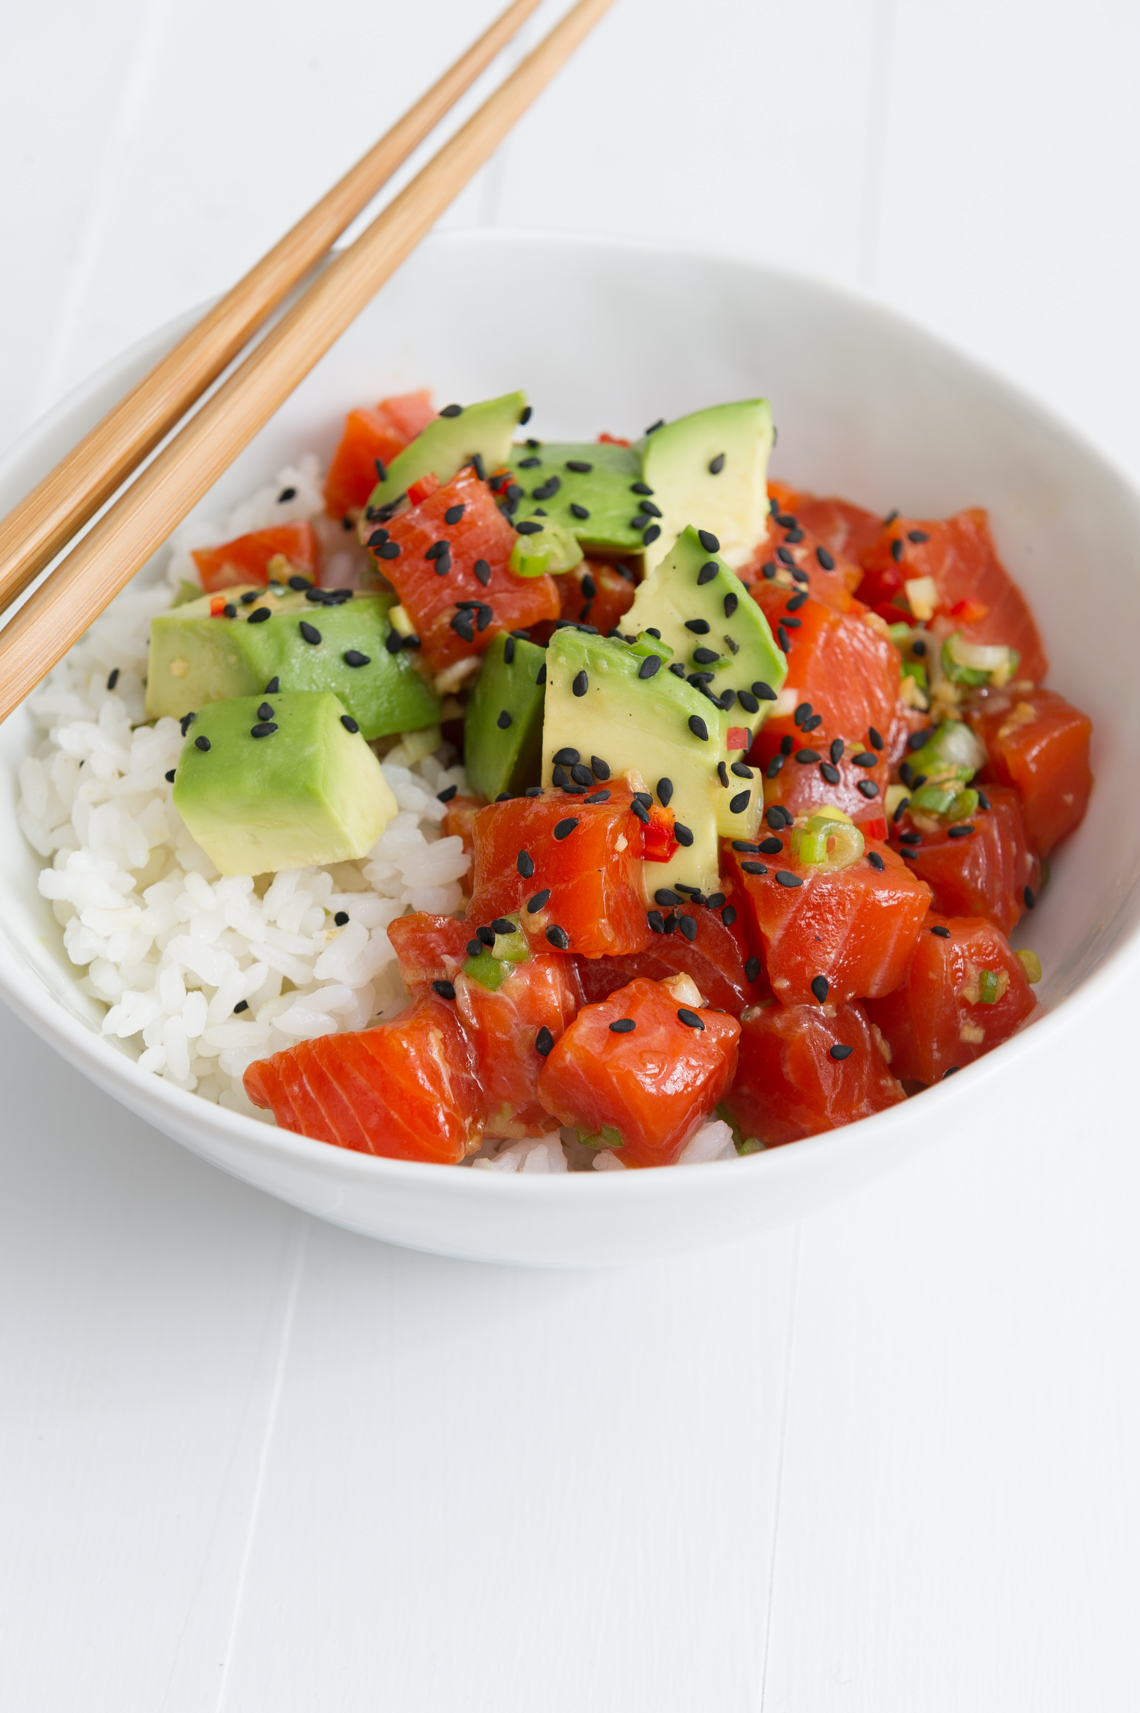 NYC Food Photographer - Copper River Salmon Poke